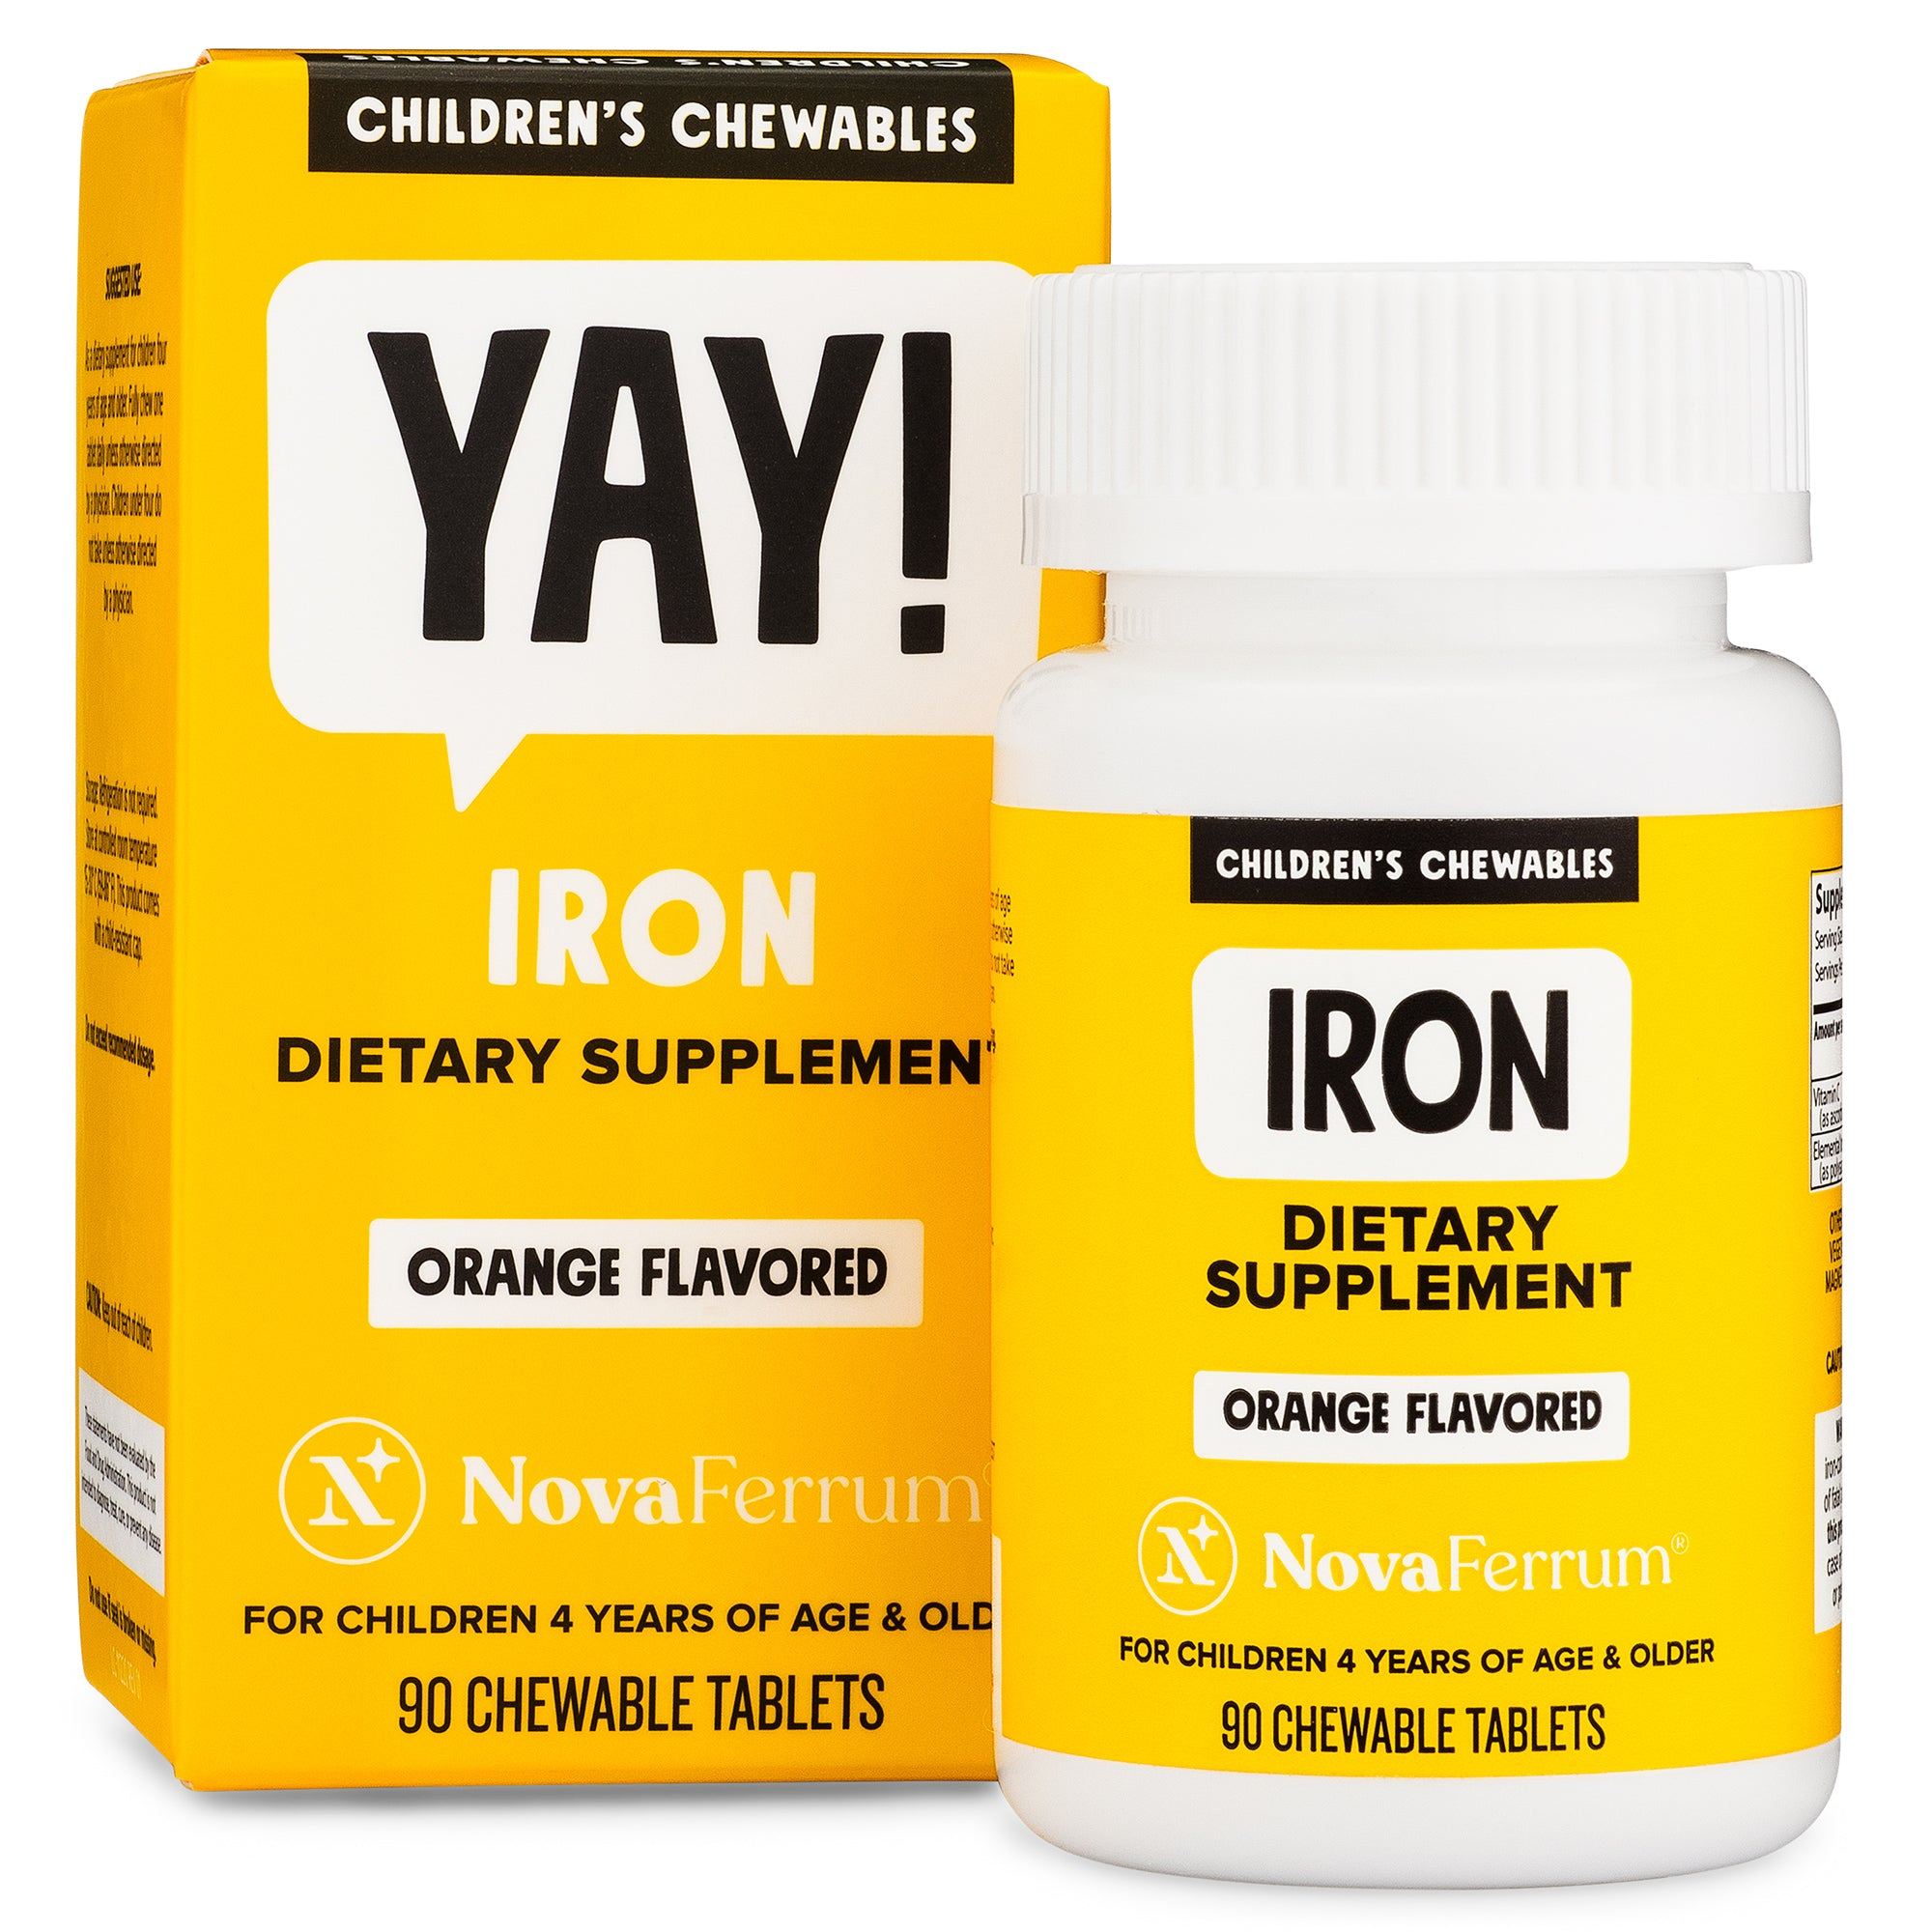 NovaFerrum Chewable Iron Supplement for Kids (90 count)